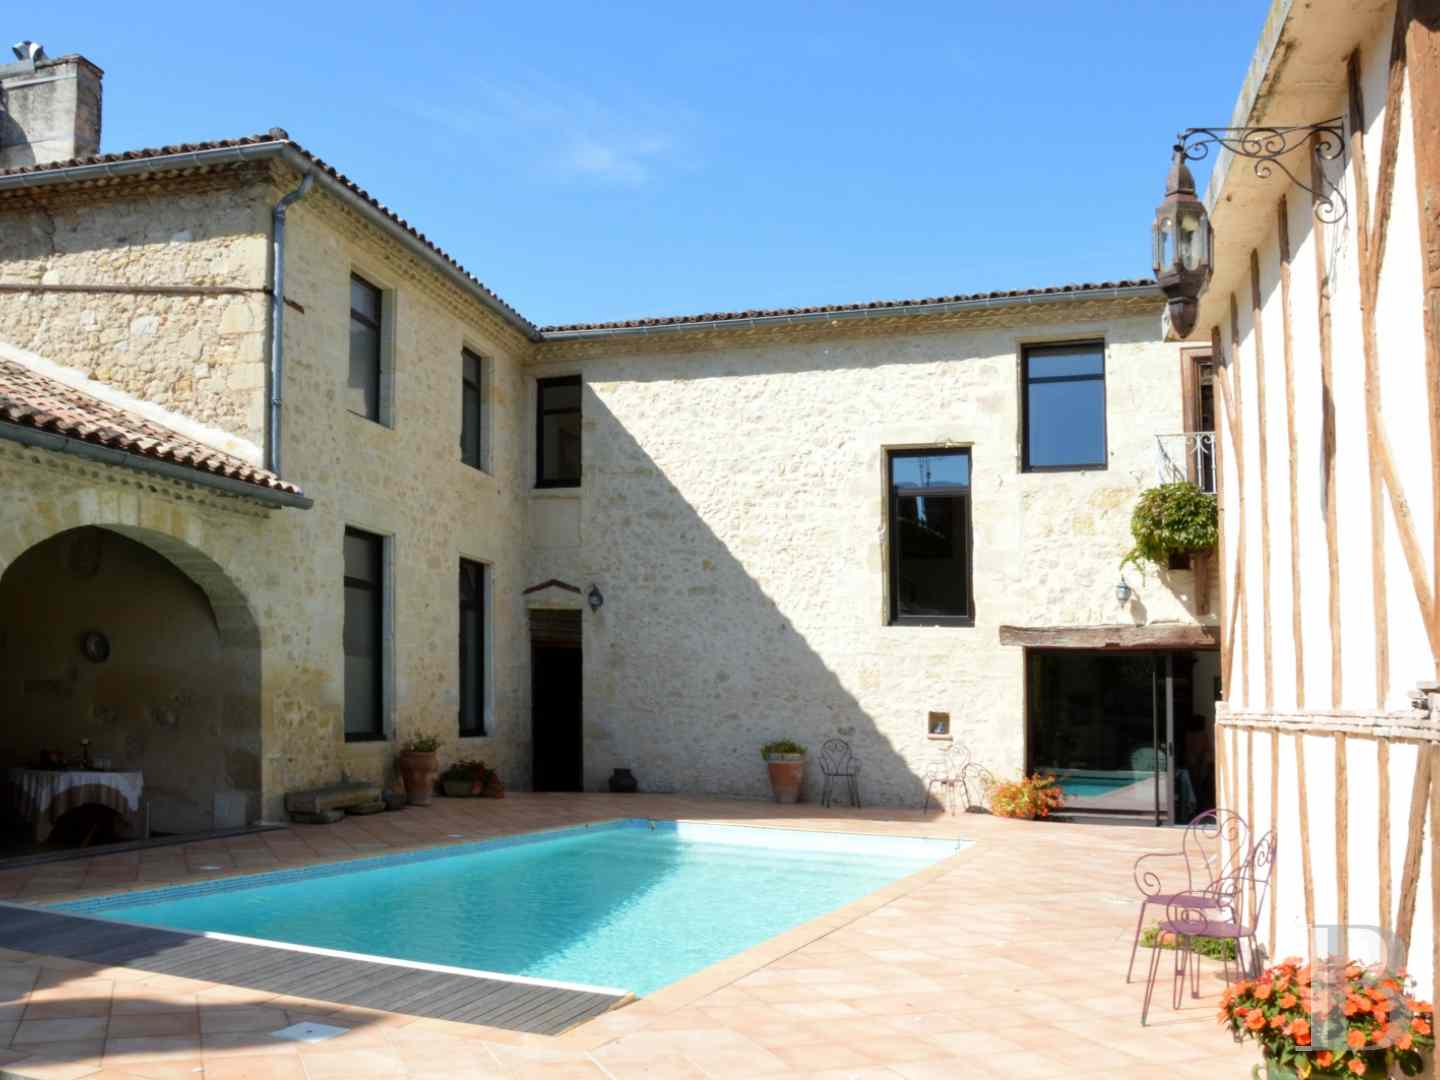 mansion houses for sale France aquitaine bordeaux region - 1 zoom